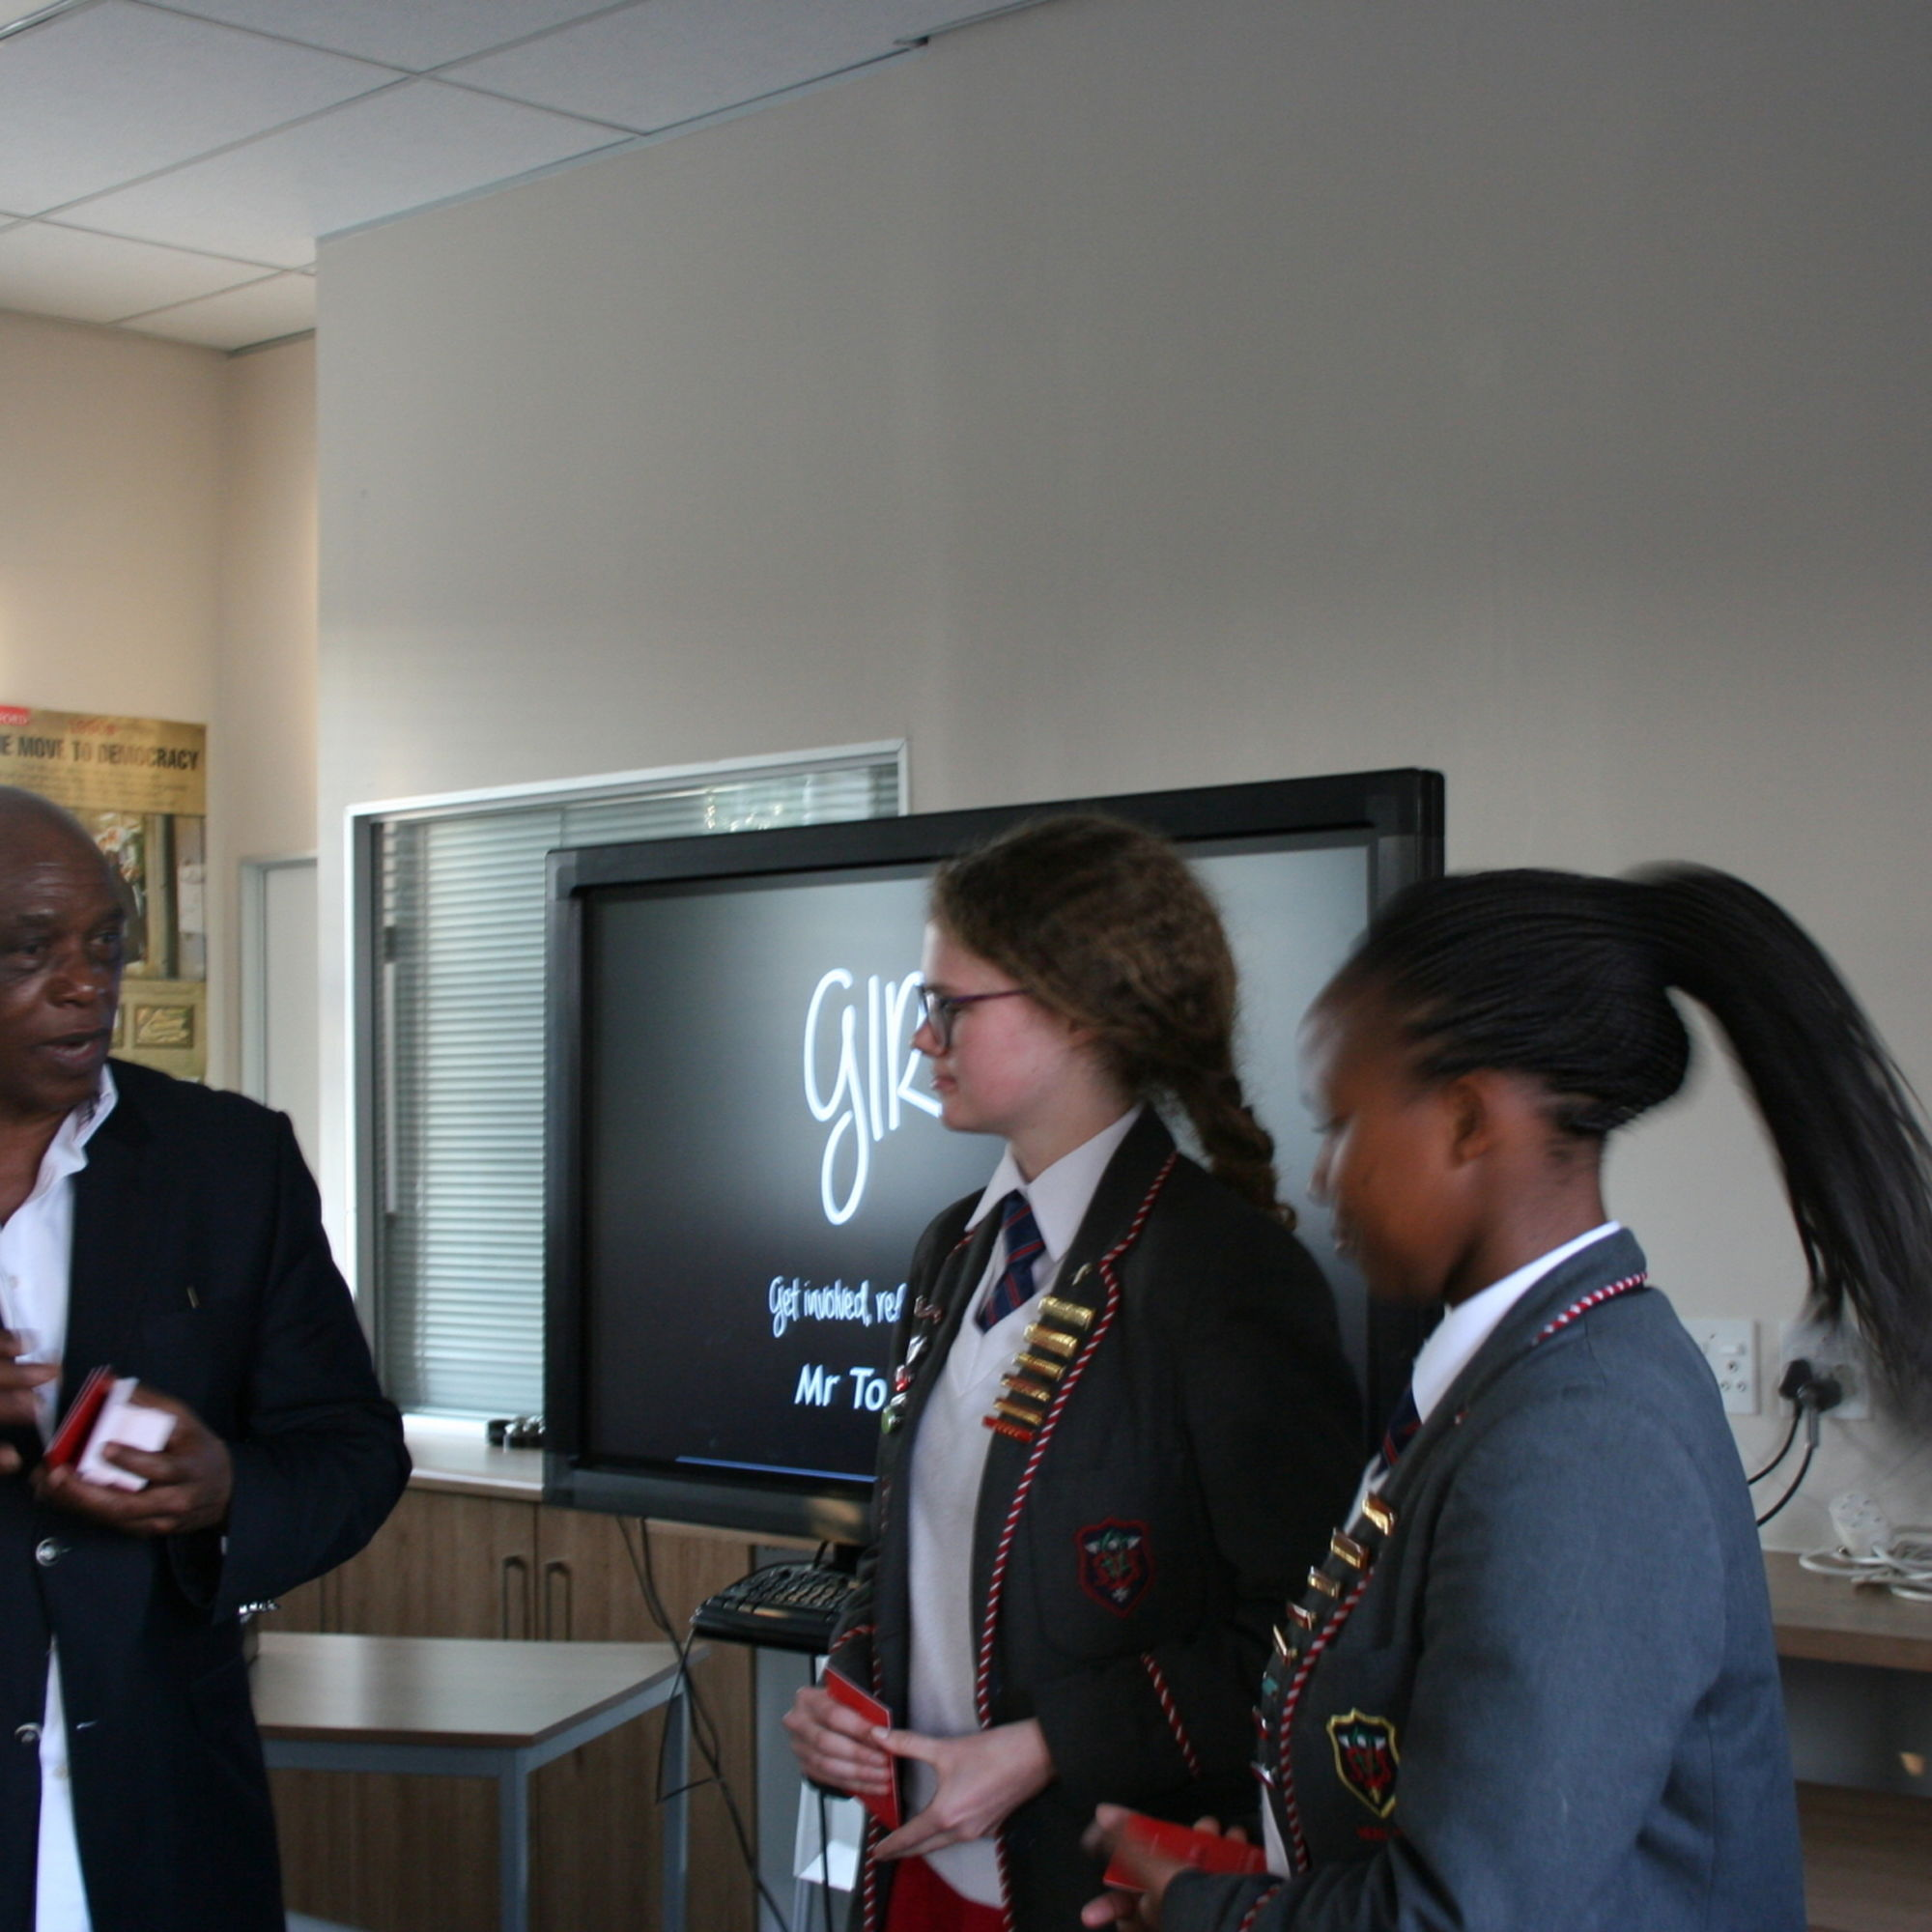 Tokyo sexwale addressing the girls committee